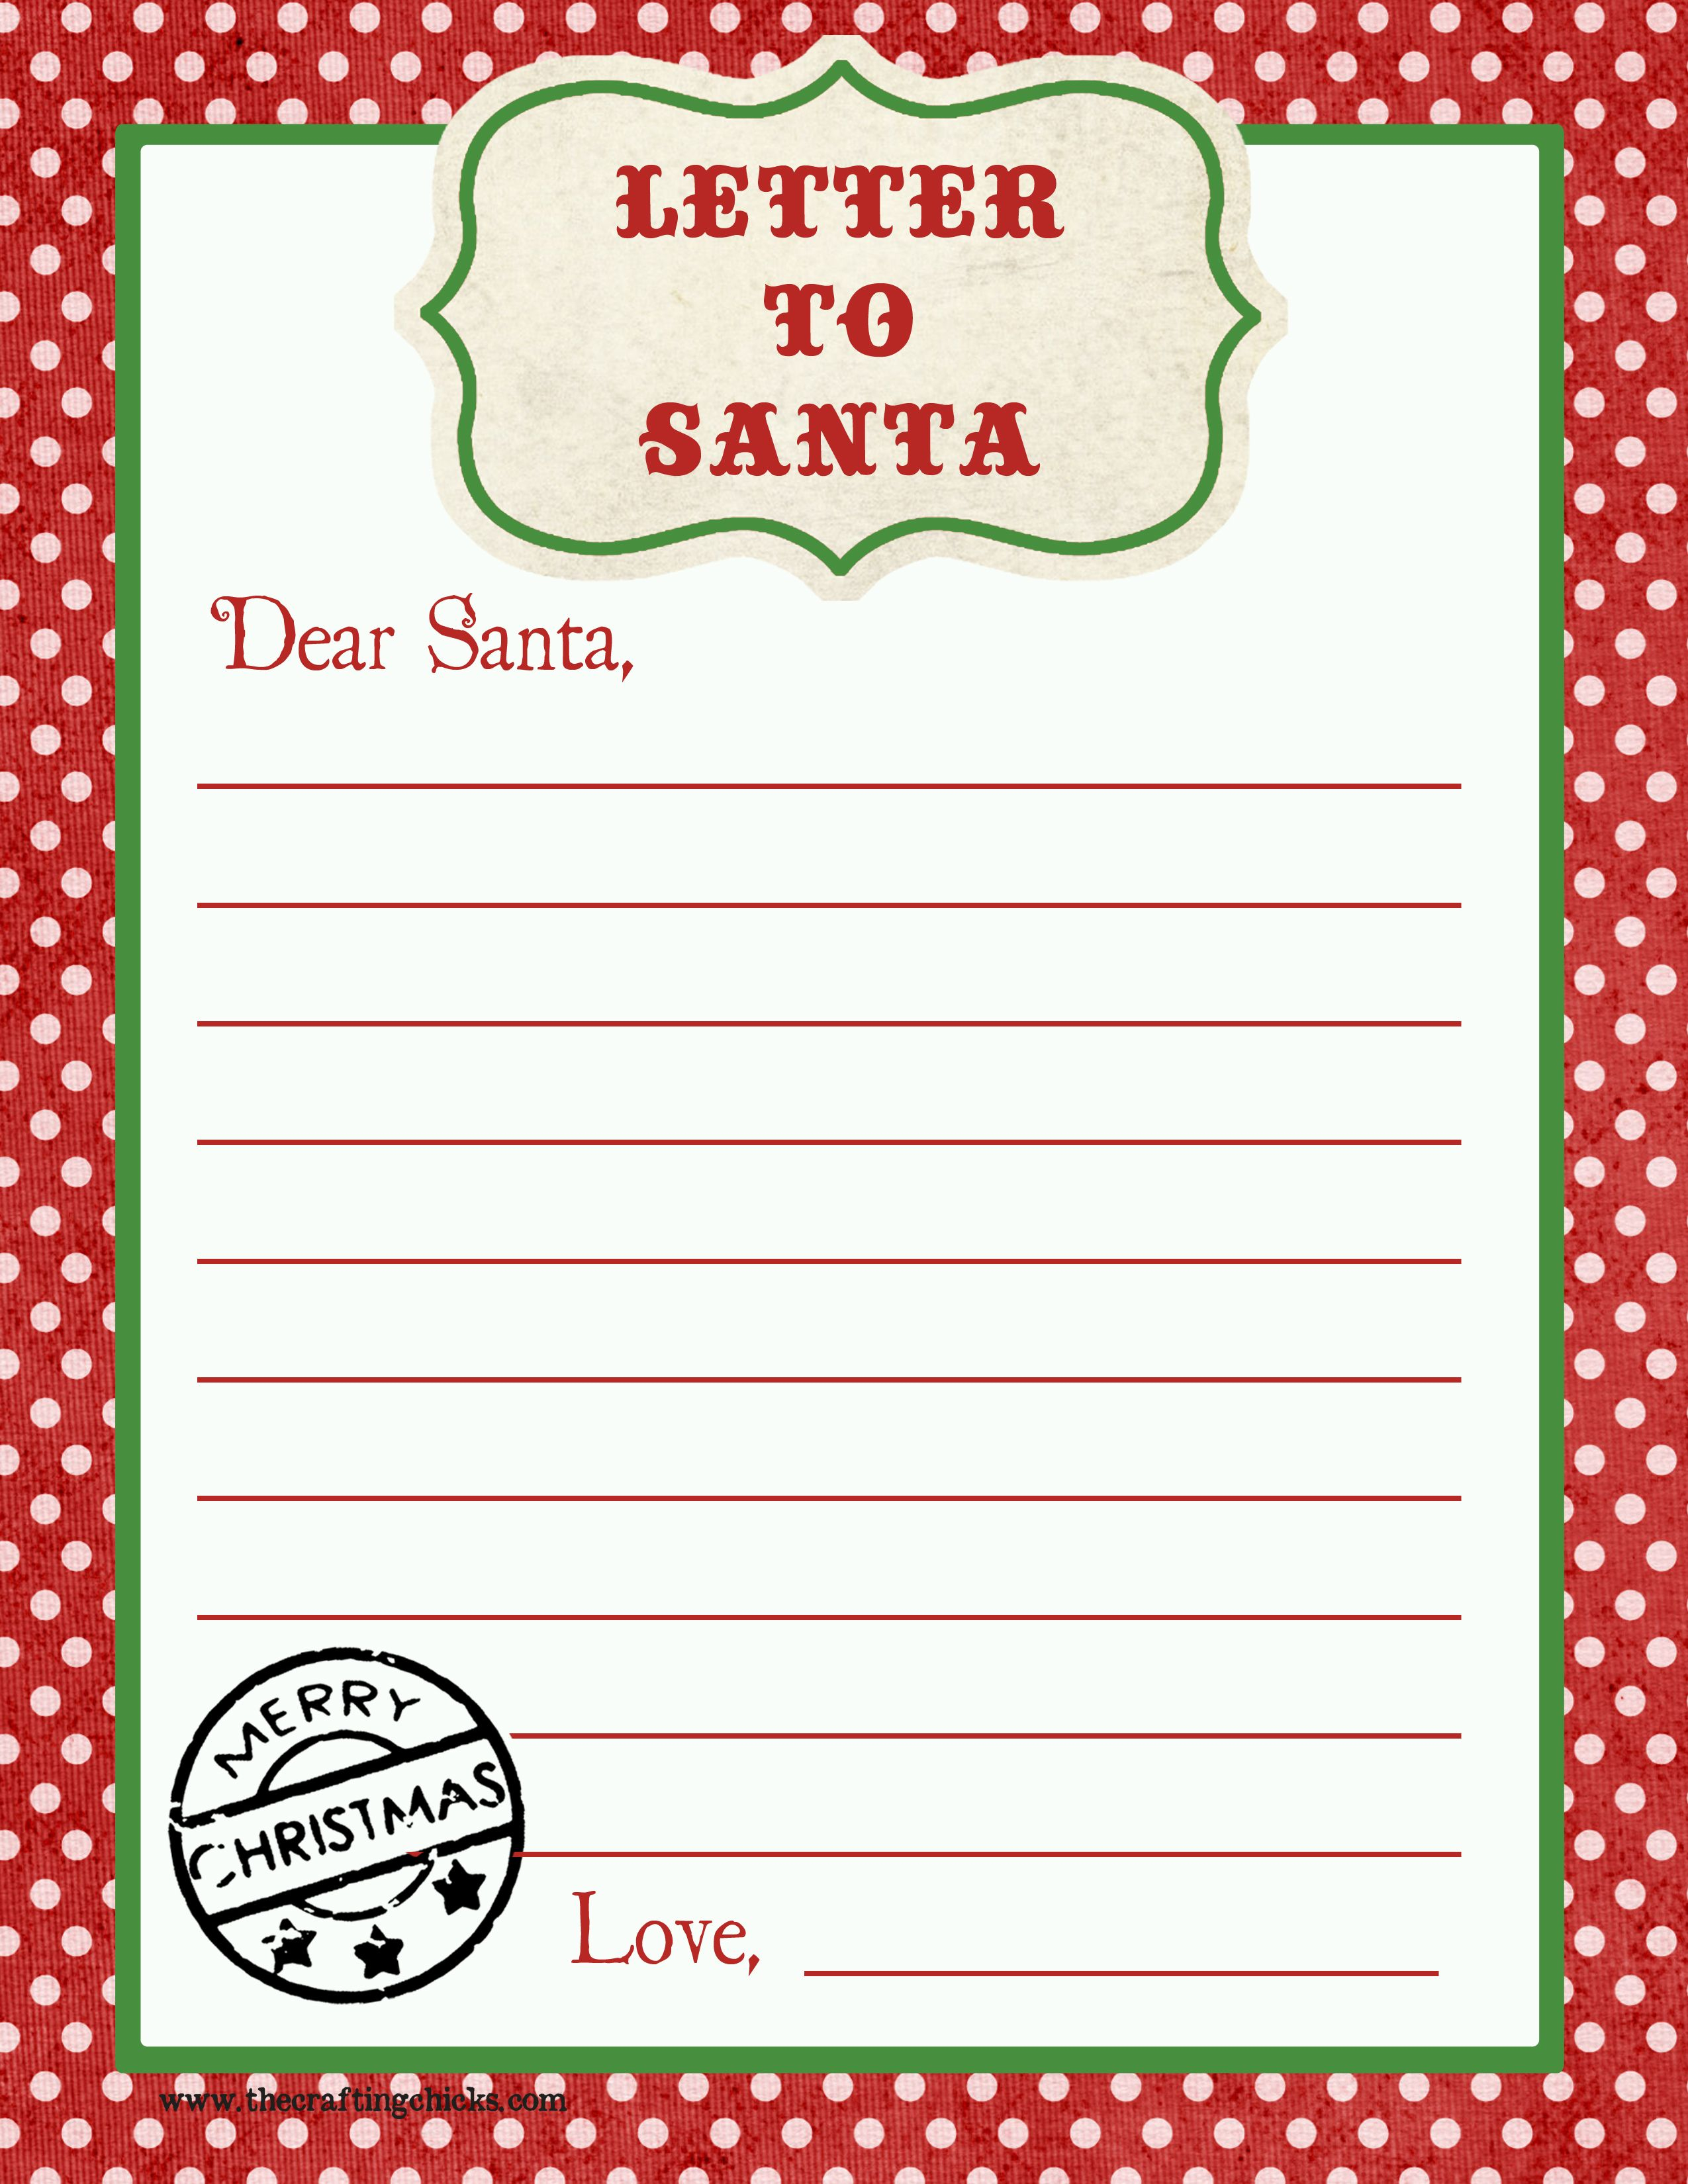 Free Letter Santa Template Download - Letter to Santa Free Printable Download